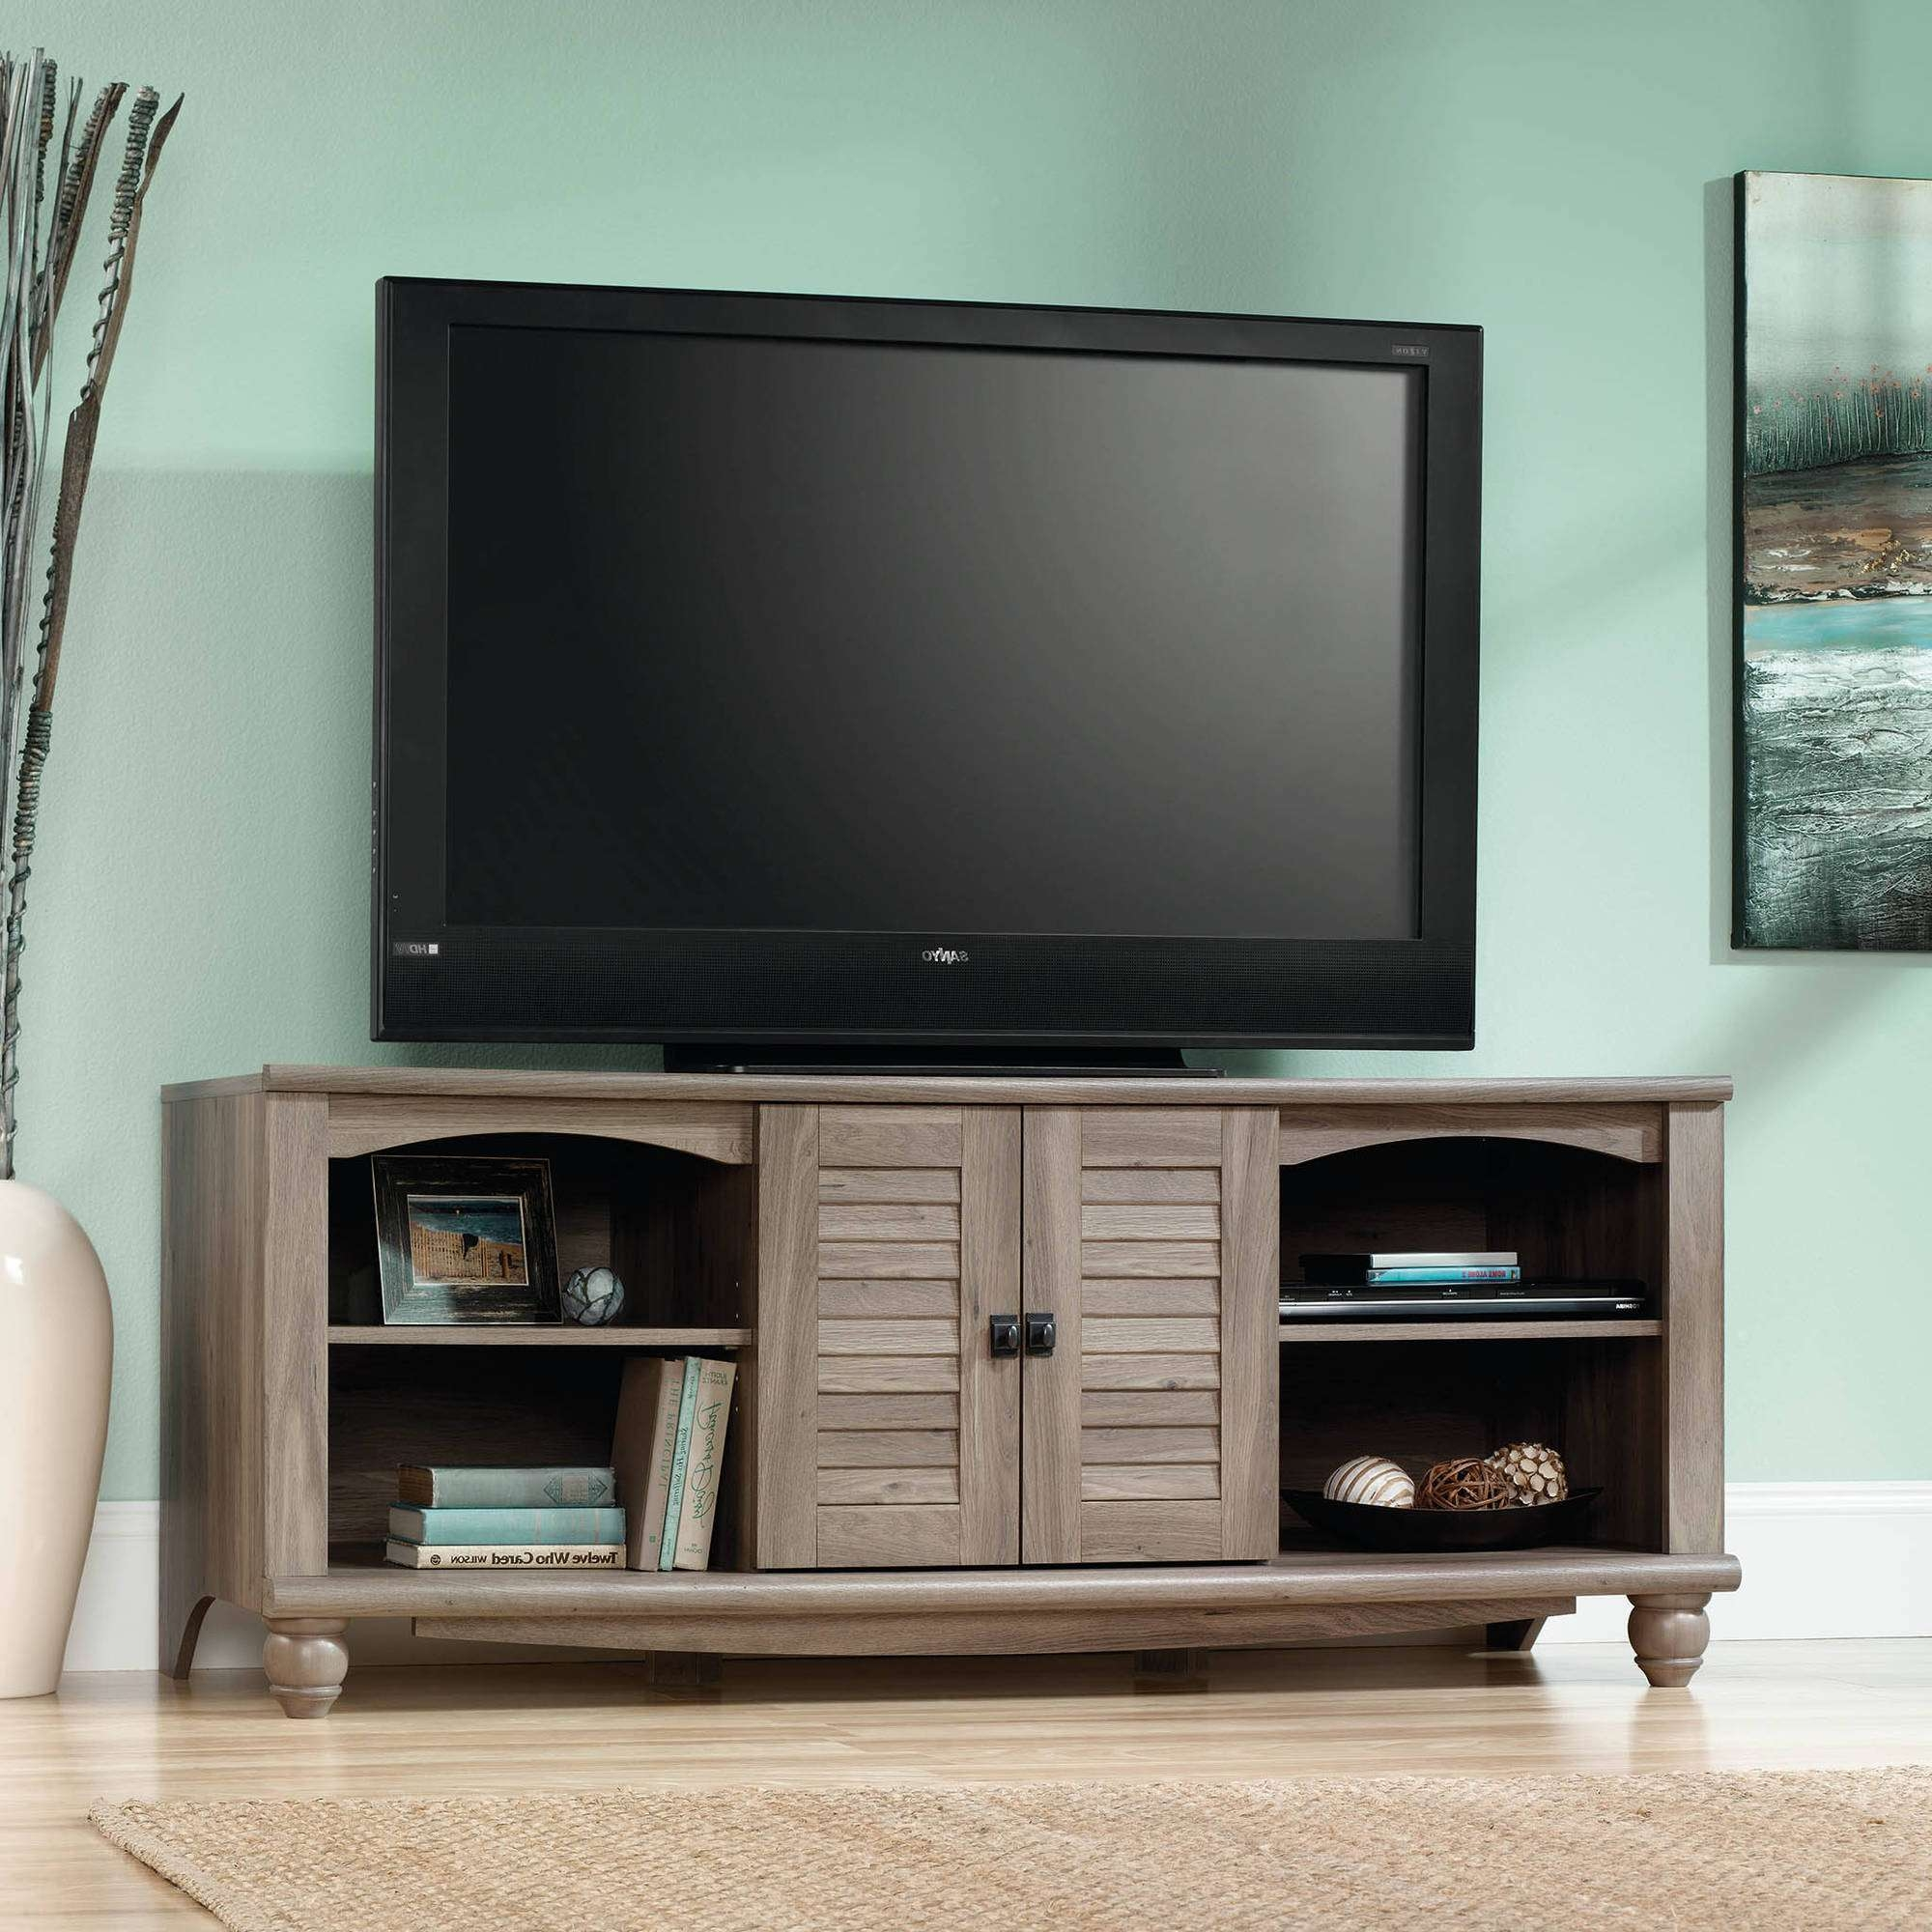 Tv Stand : Stirring Corner Tv Stand Mount Photo Design Bush Inside Black Corner Tv Stands For Tvs Up To (View 8 of 20)